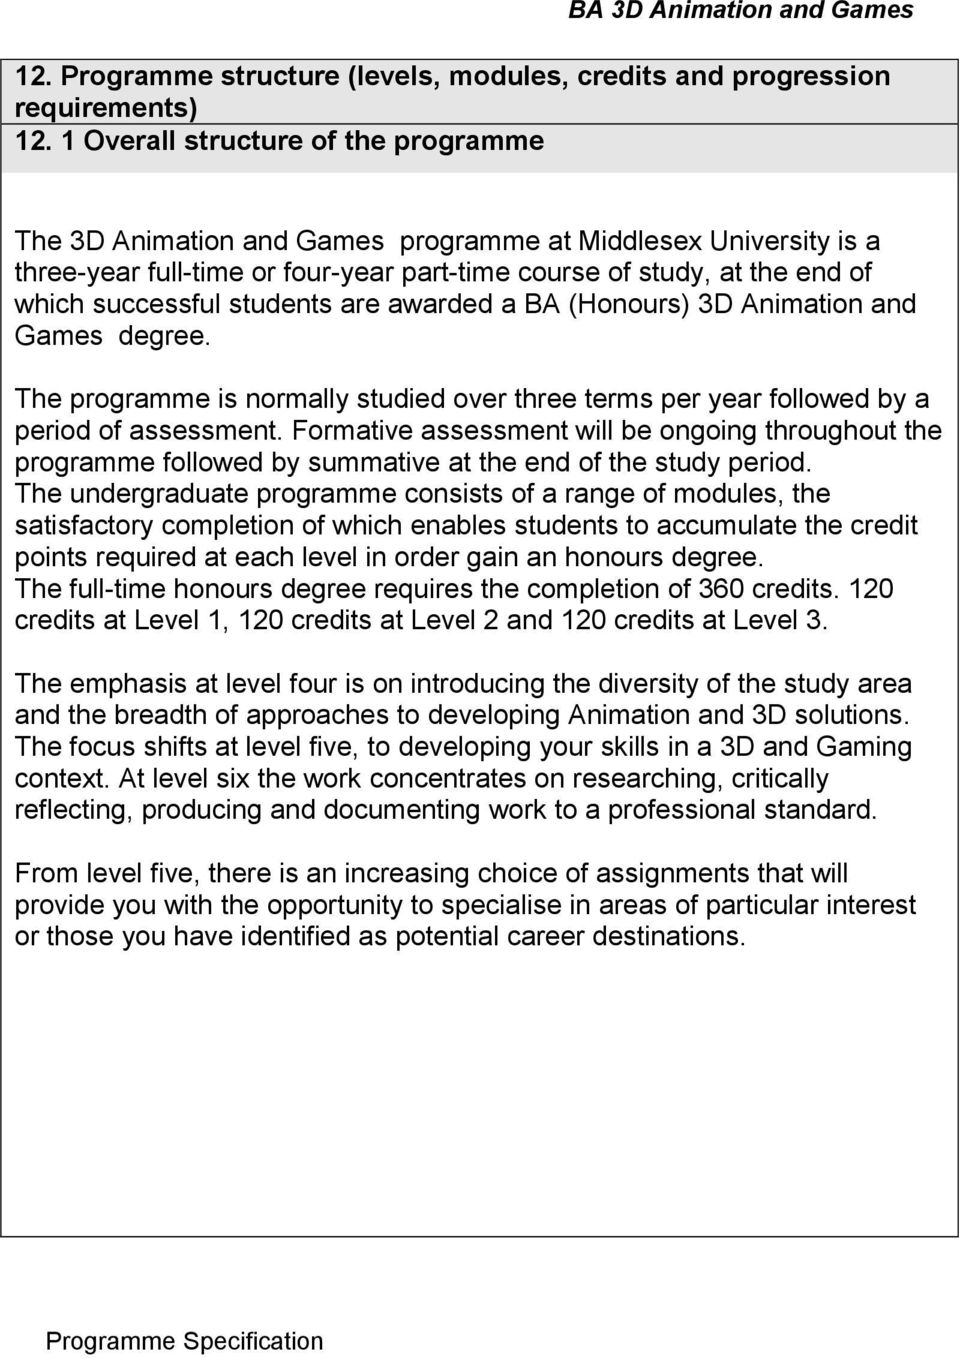 students are awarded a BA (Honours) 3D Animation and Games degree. The programme is normally studied over three terms per year followed by a period of assessment.